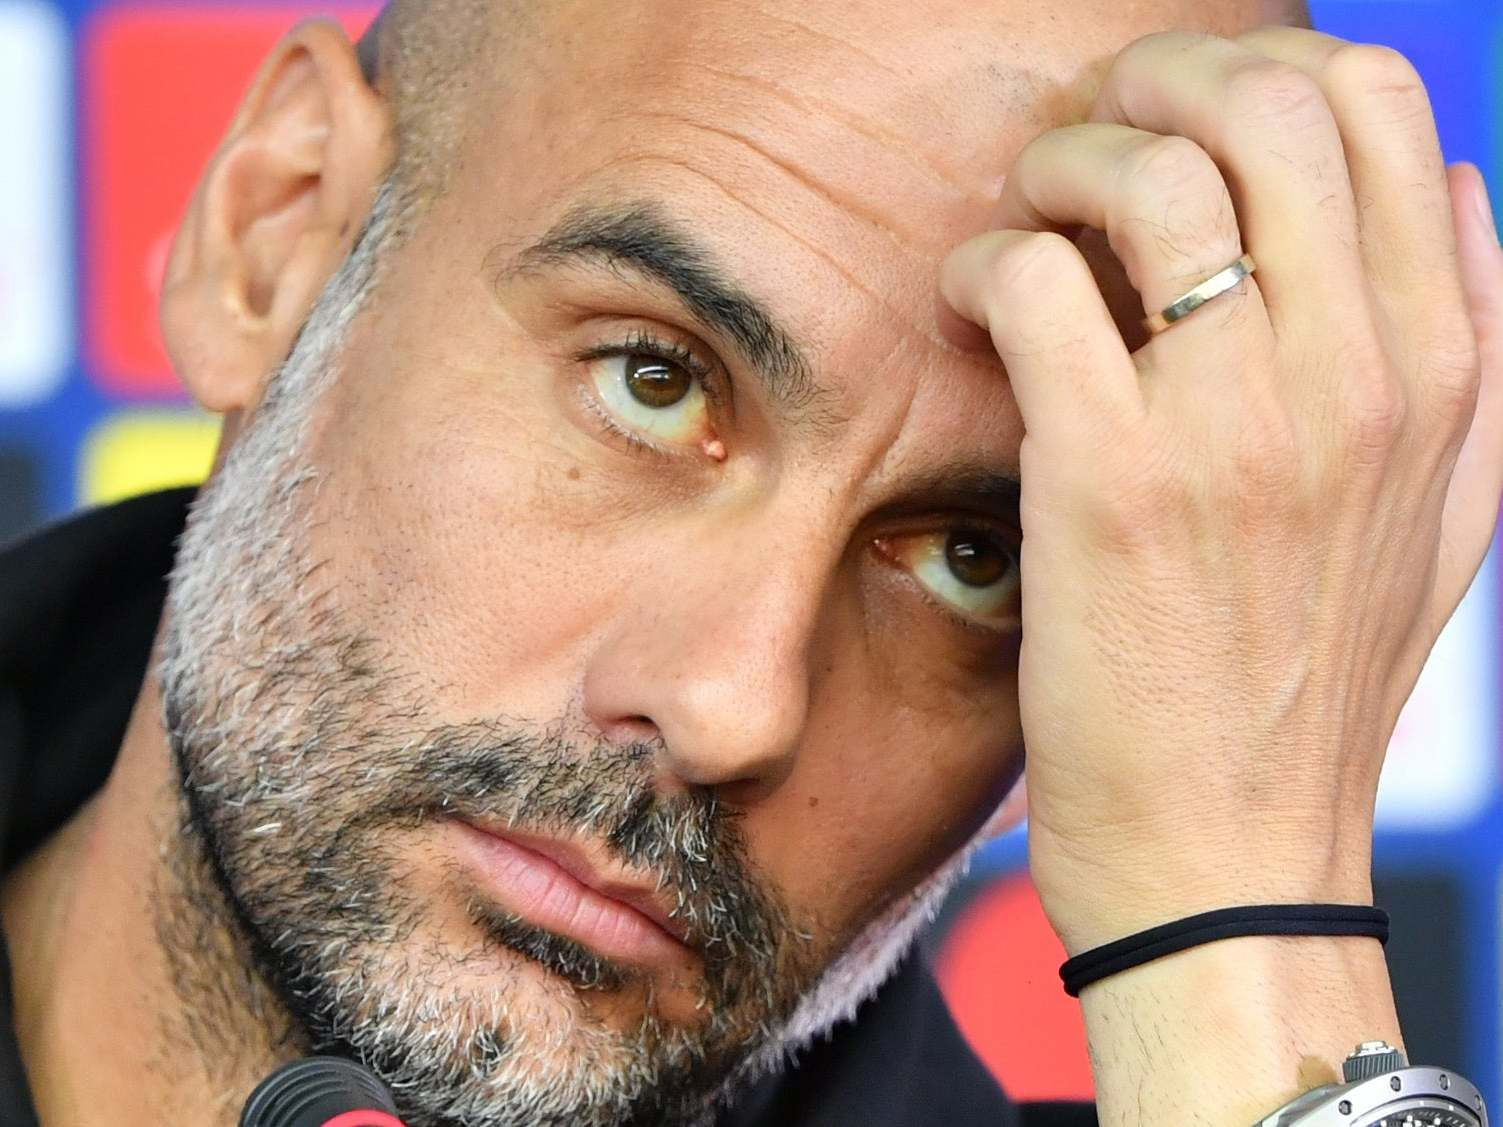 John Stones injury: What are Pep Guardiola's options of solving Man City's defensive crisis?